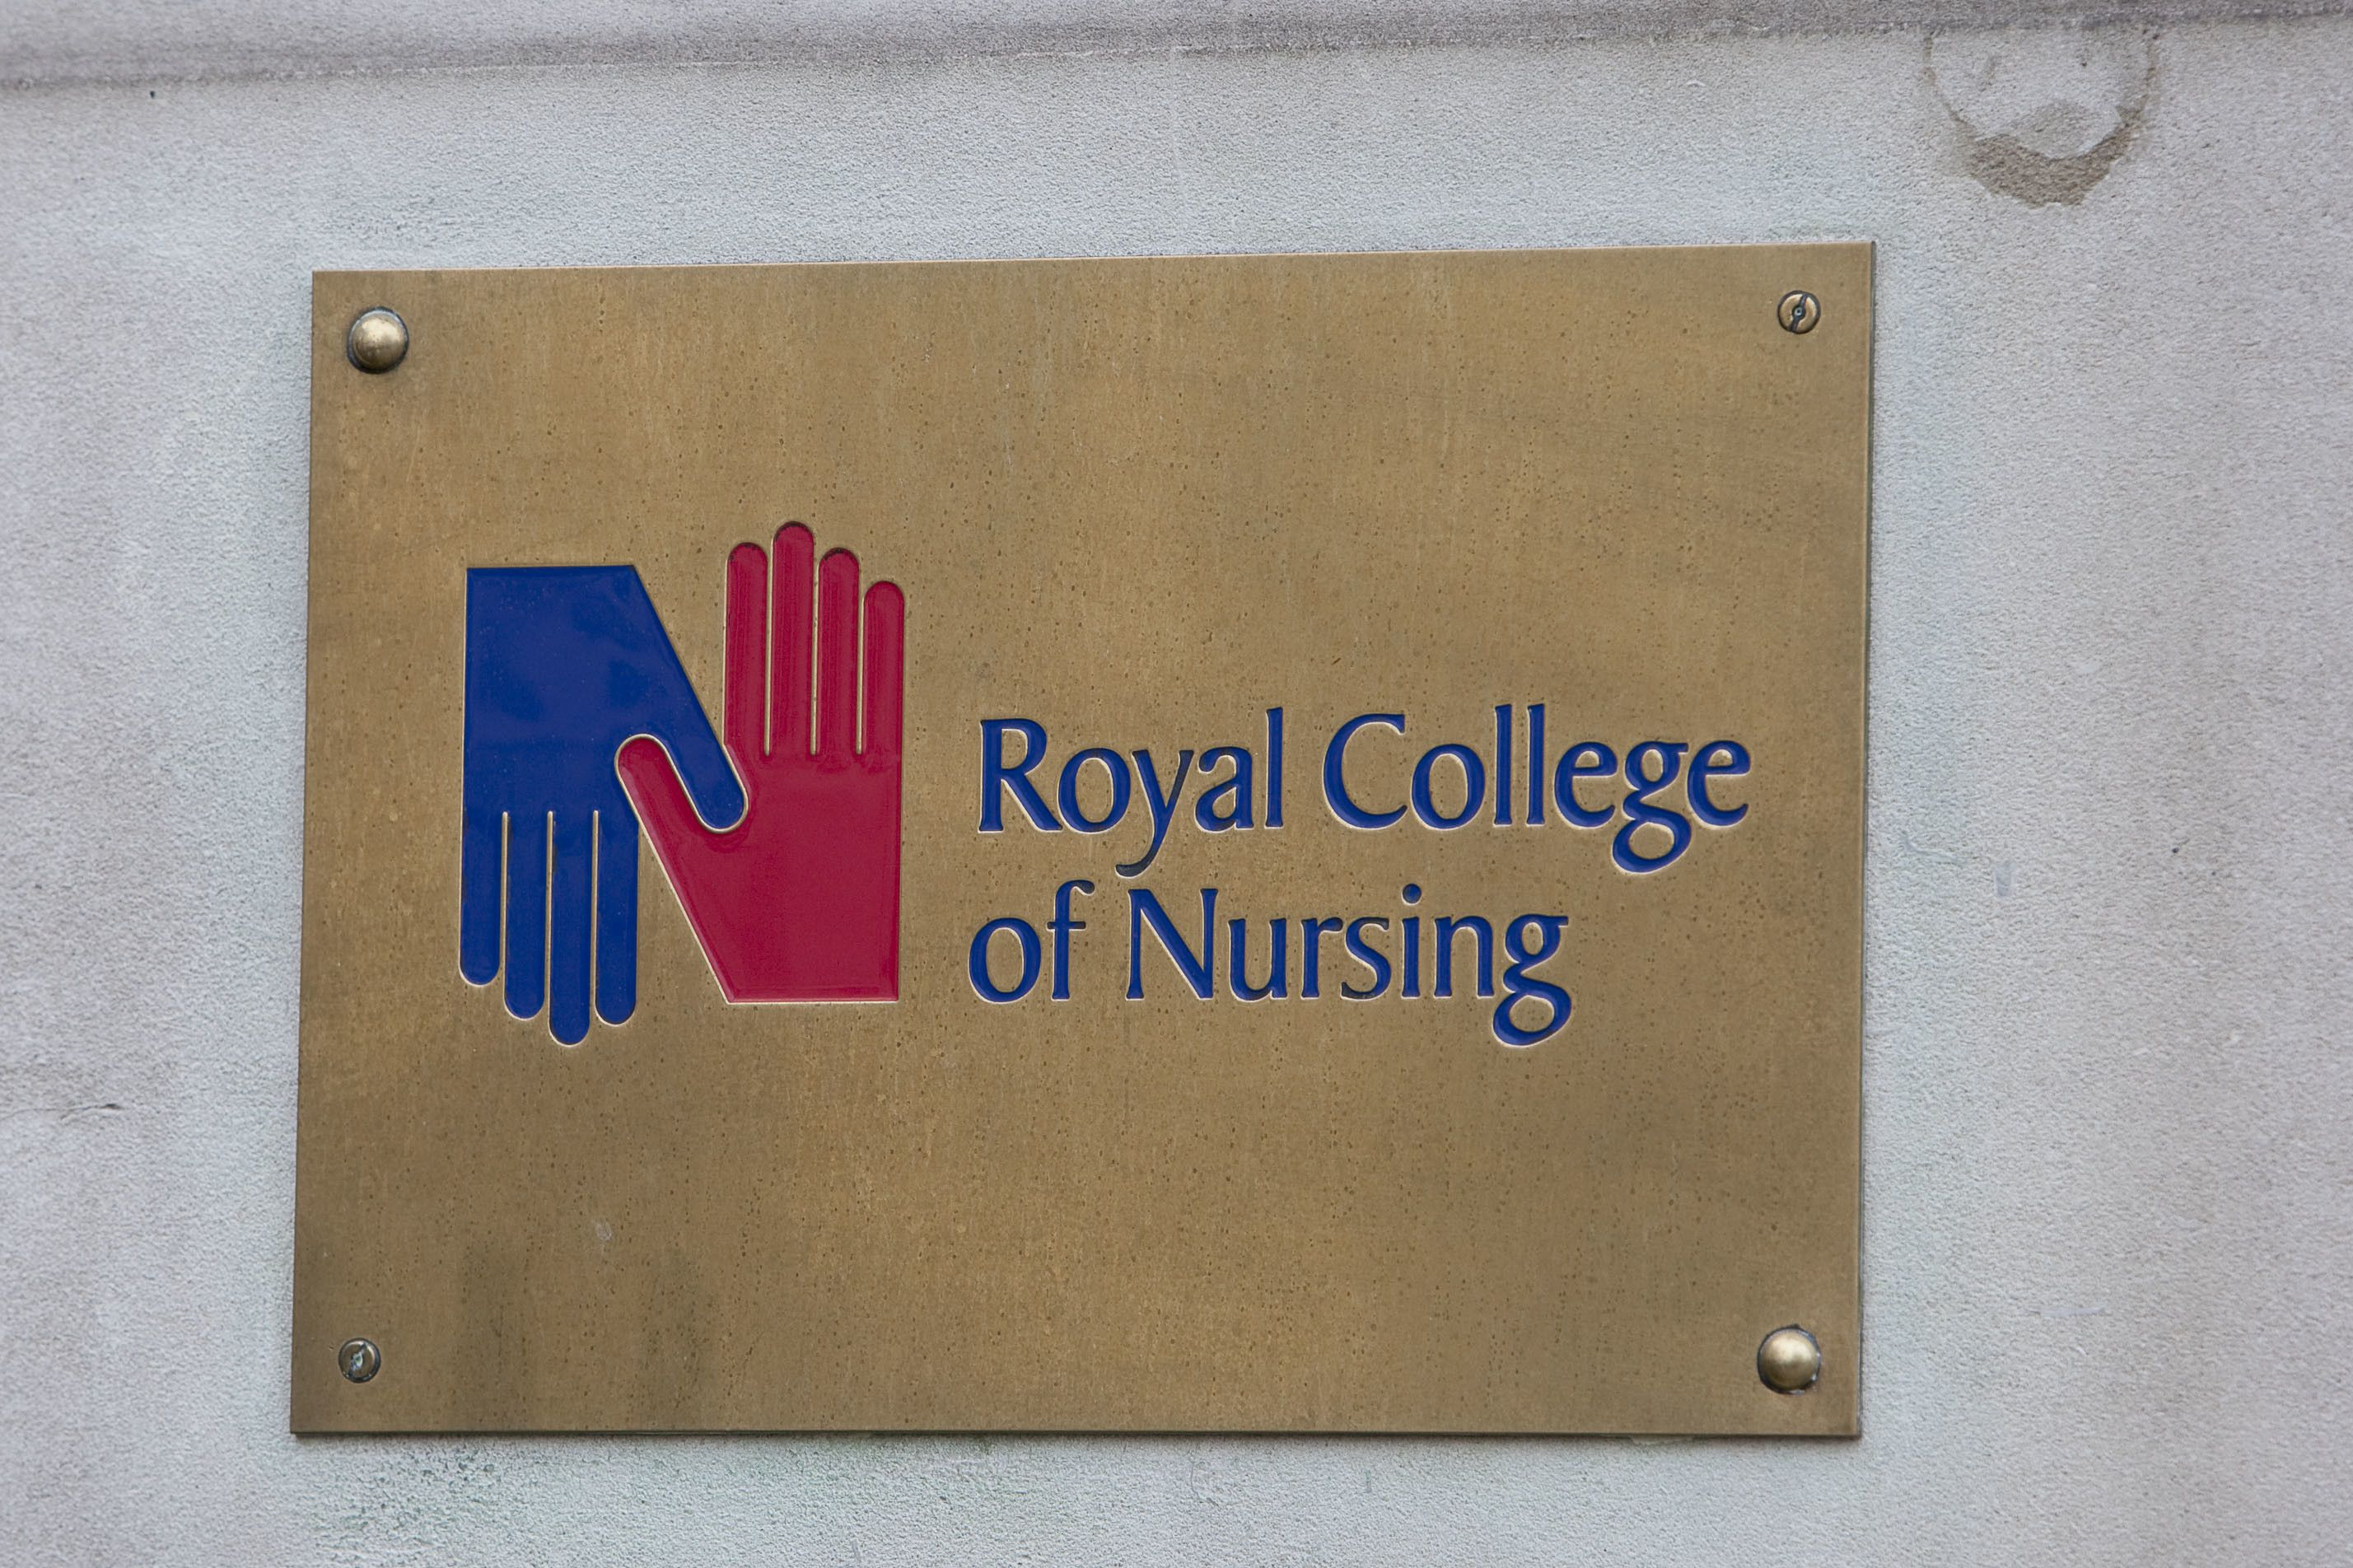 RCN row continues as petitioners complain of being shut out